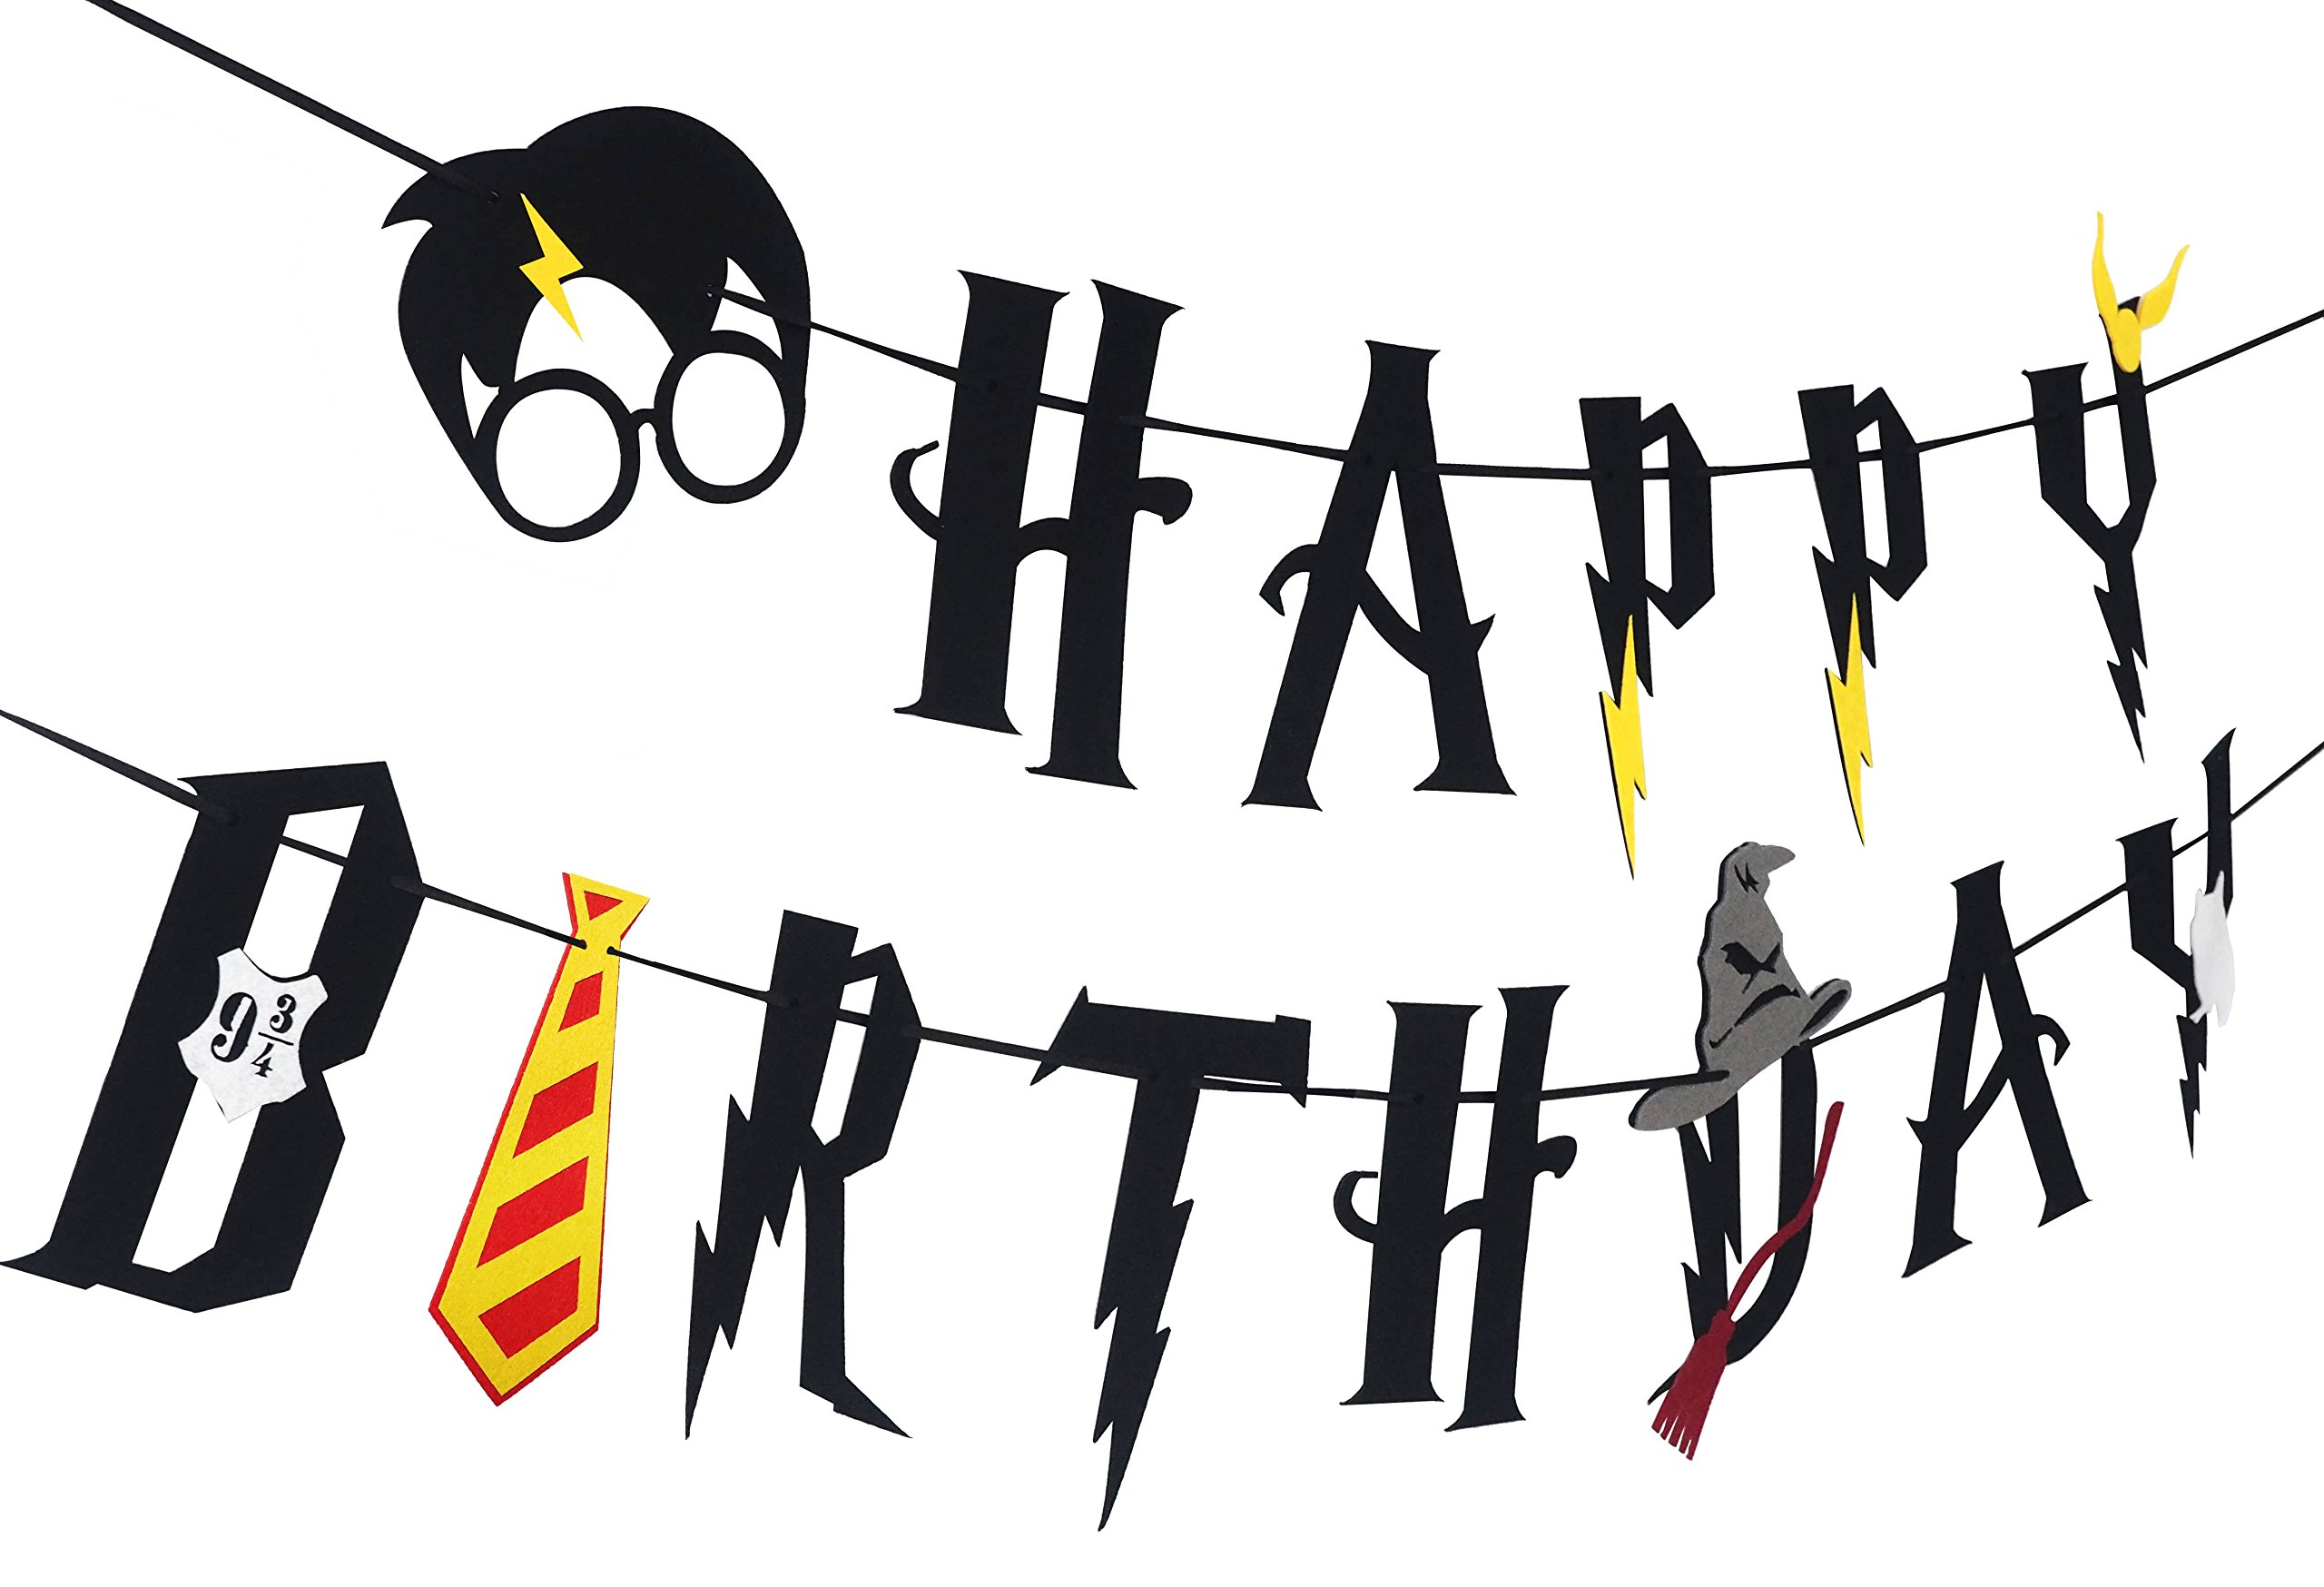 image regarding Harry Potter Stencils Printable named Harry Potter Stencil 4-10 inch Dimensions Offered Xmas present